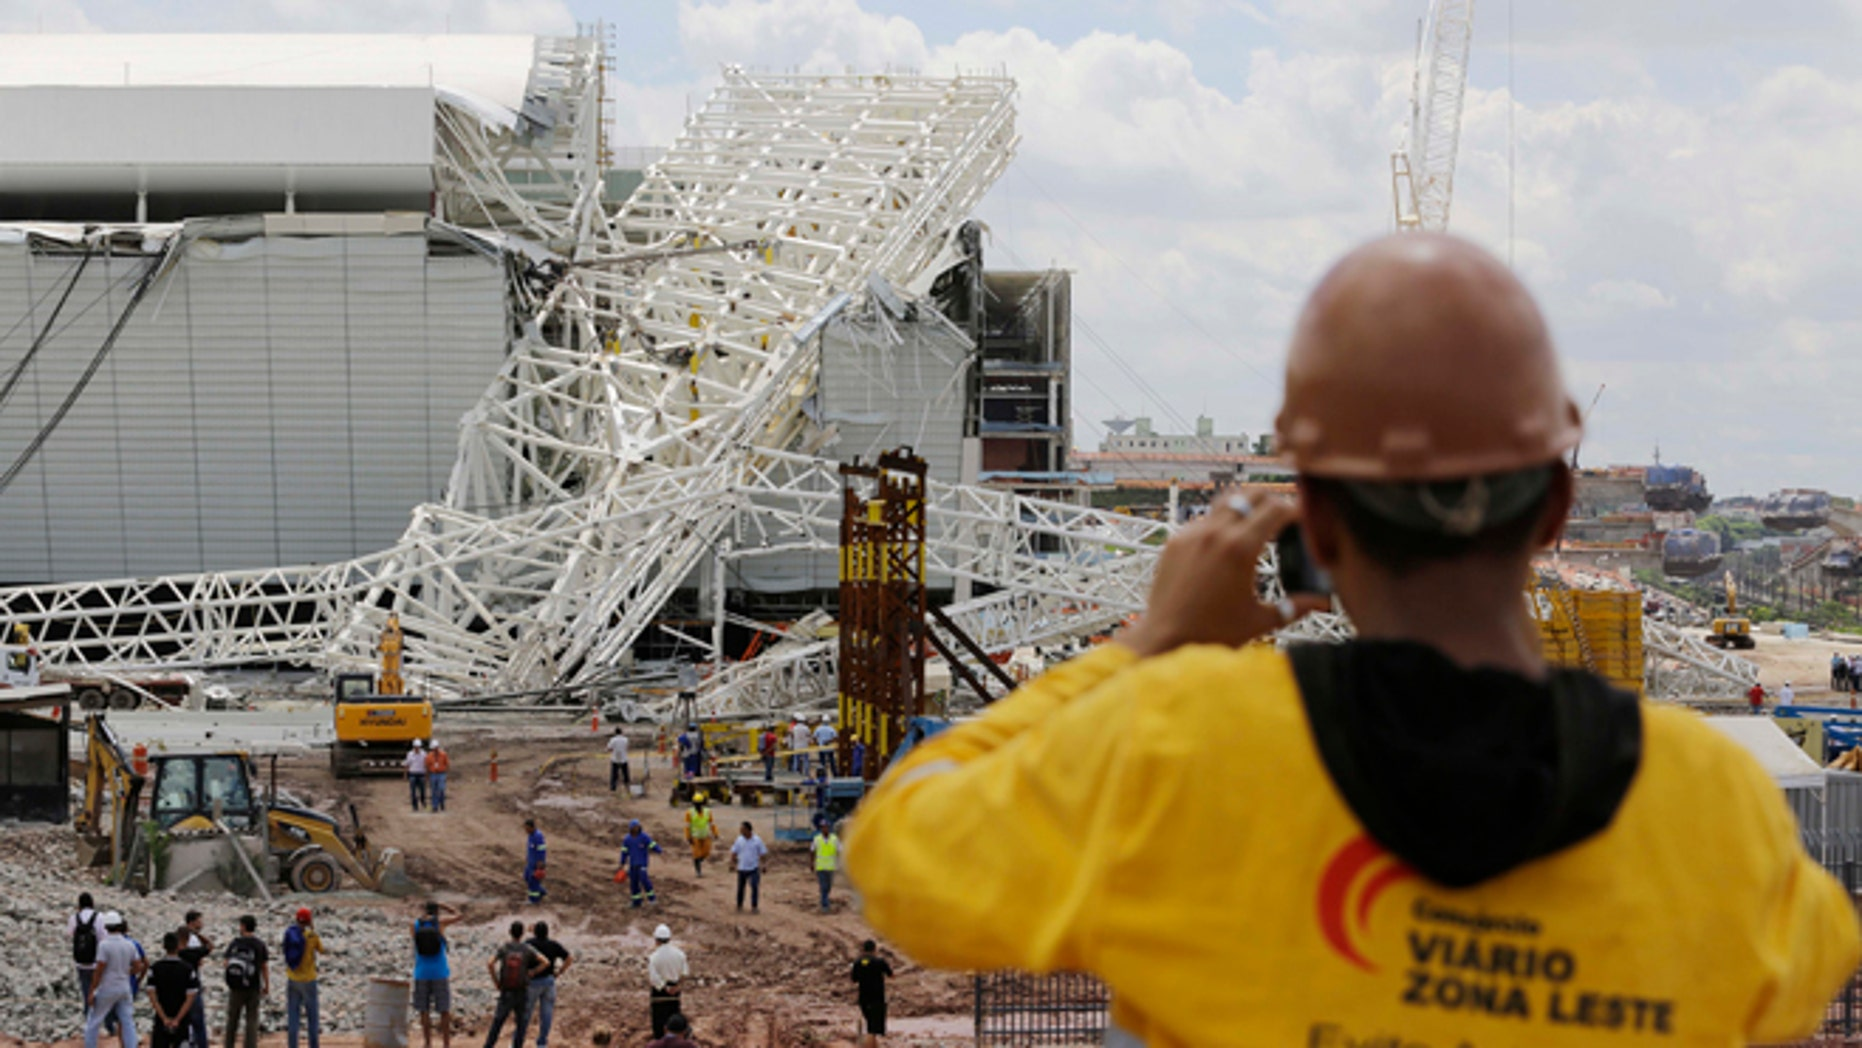 The Itaquerao Stadium after a collapse in Sao Paulo, Brazil, Wednesday, Nov. 27, 2013.